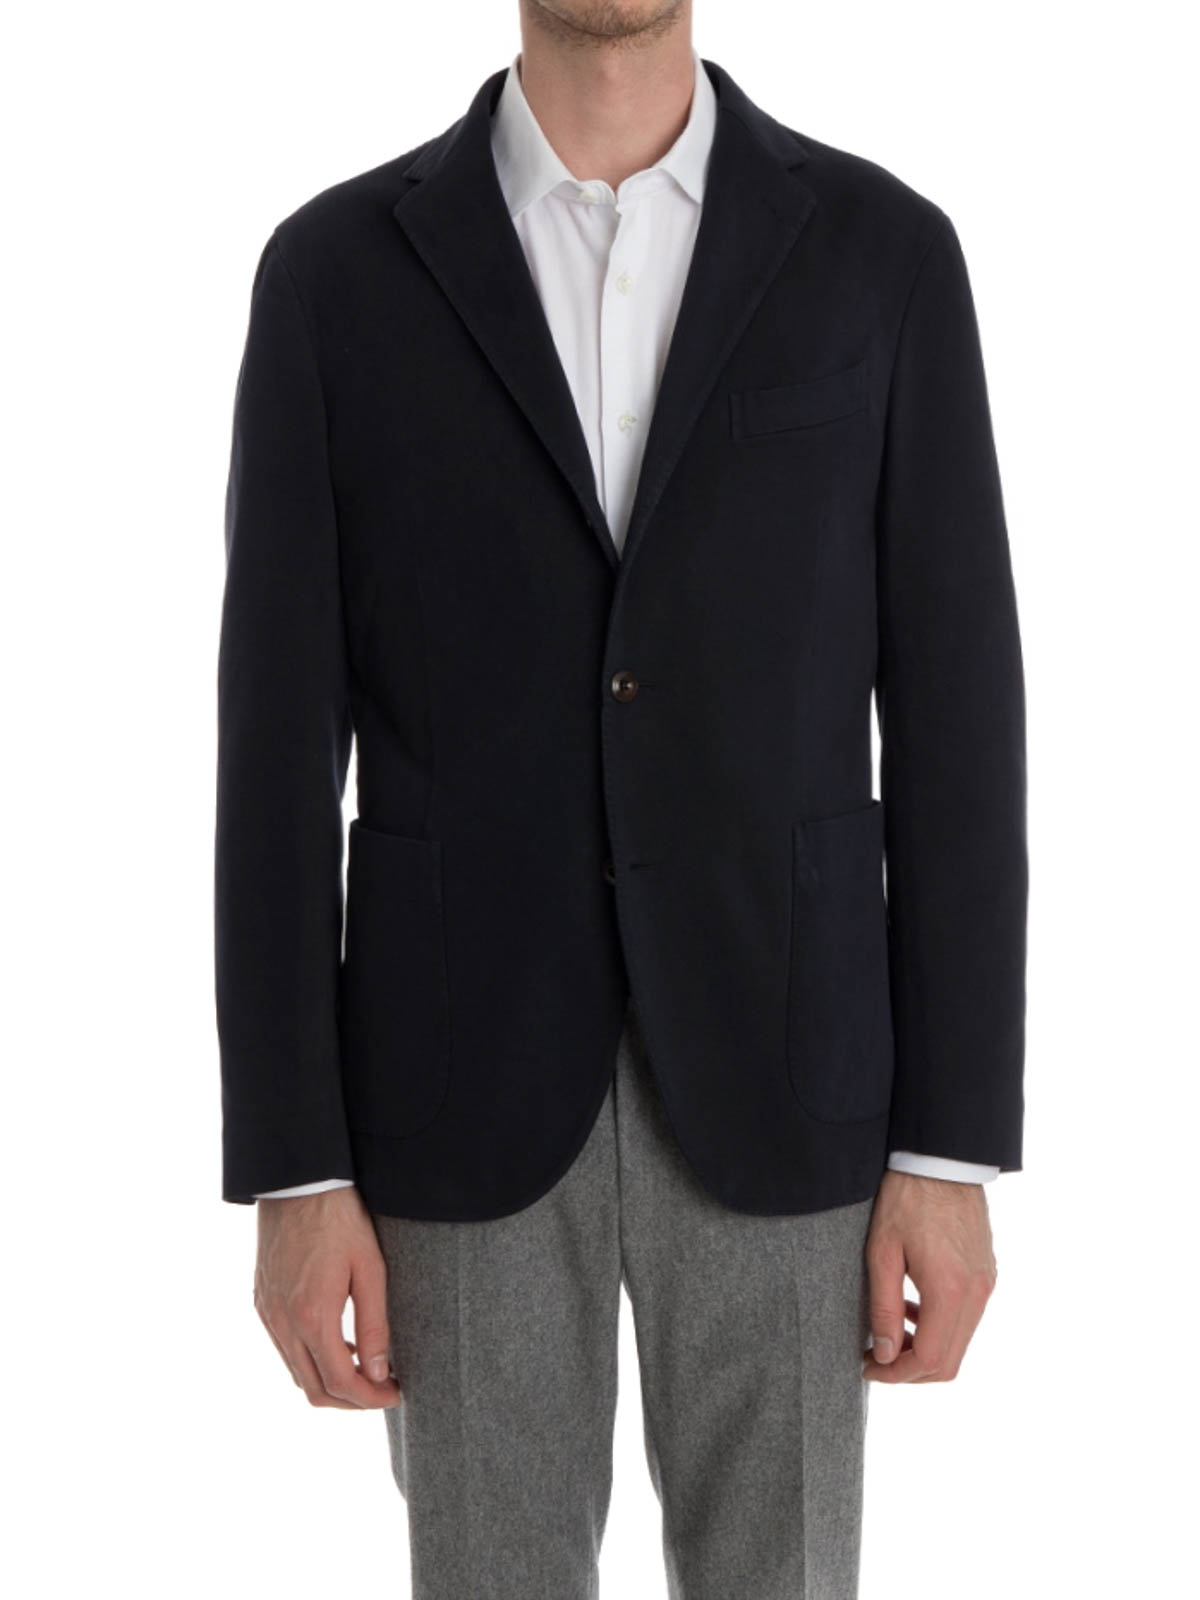 A shirt-blazer hybrid, this four-button style is partially lined to help retain its relaxed structure, making it ideal for smartening up your everyday outfits. Team with blue jeans and a cotton.